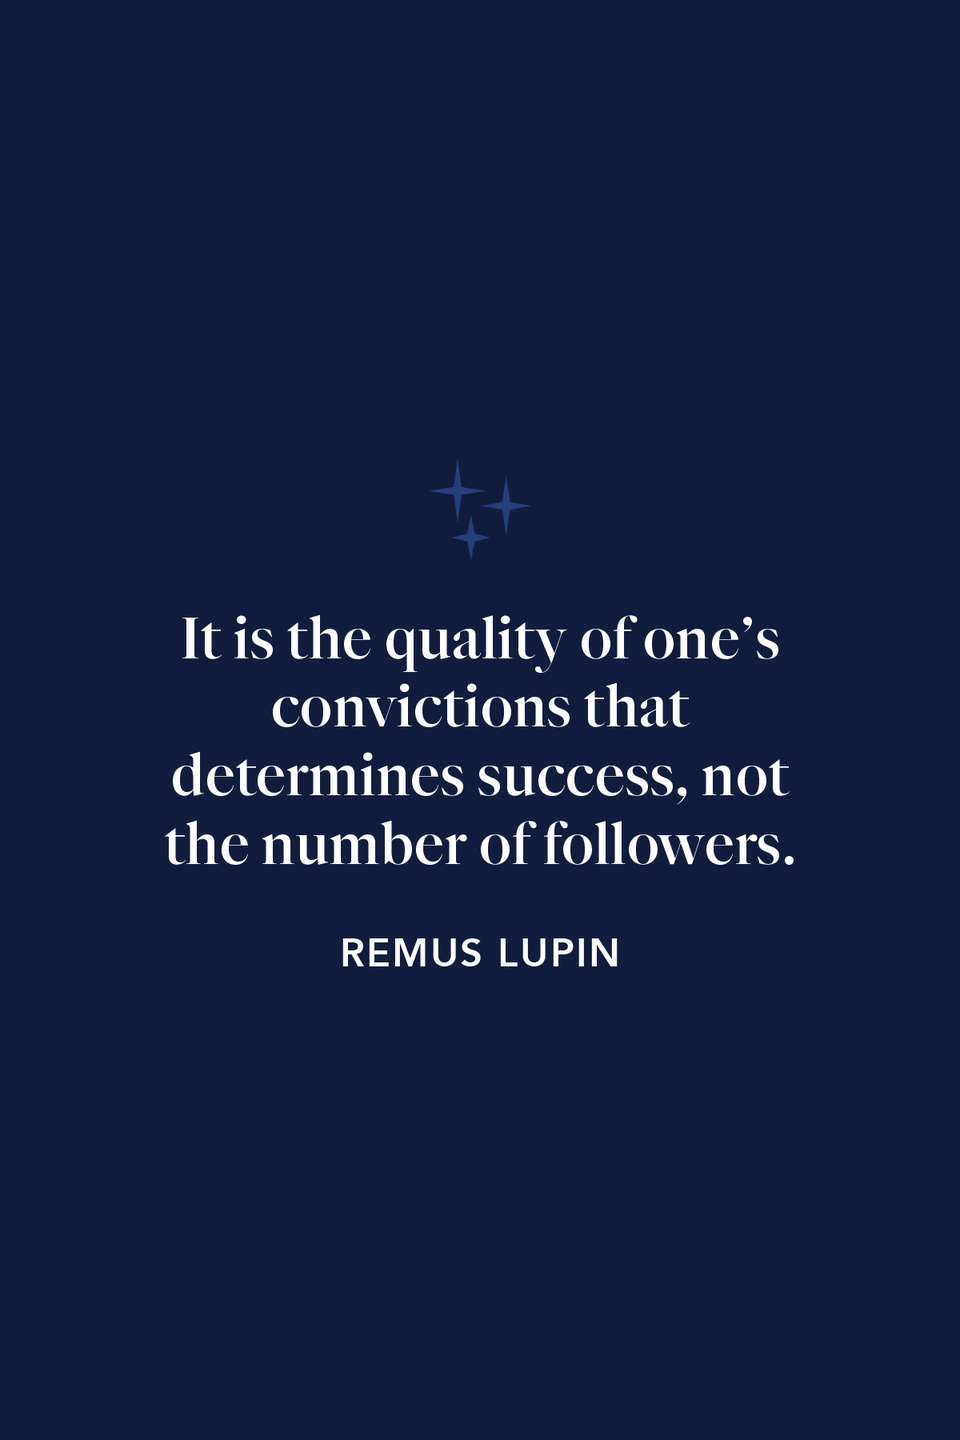 """<p>""""It is the quality of one's convictions that determines success, not the number of followers,"""" Remus Lupin said to Kingsley Shacklebolt before the Battle of Hogwarts in <em>The Deathly Hallows</em>.</p>"""